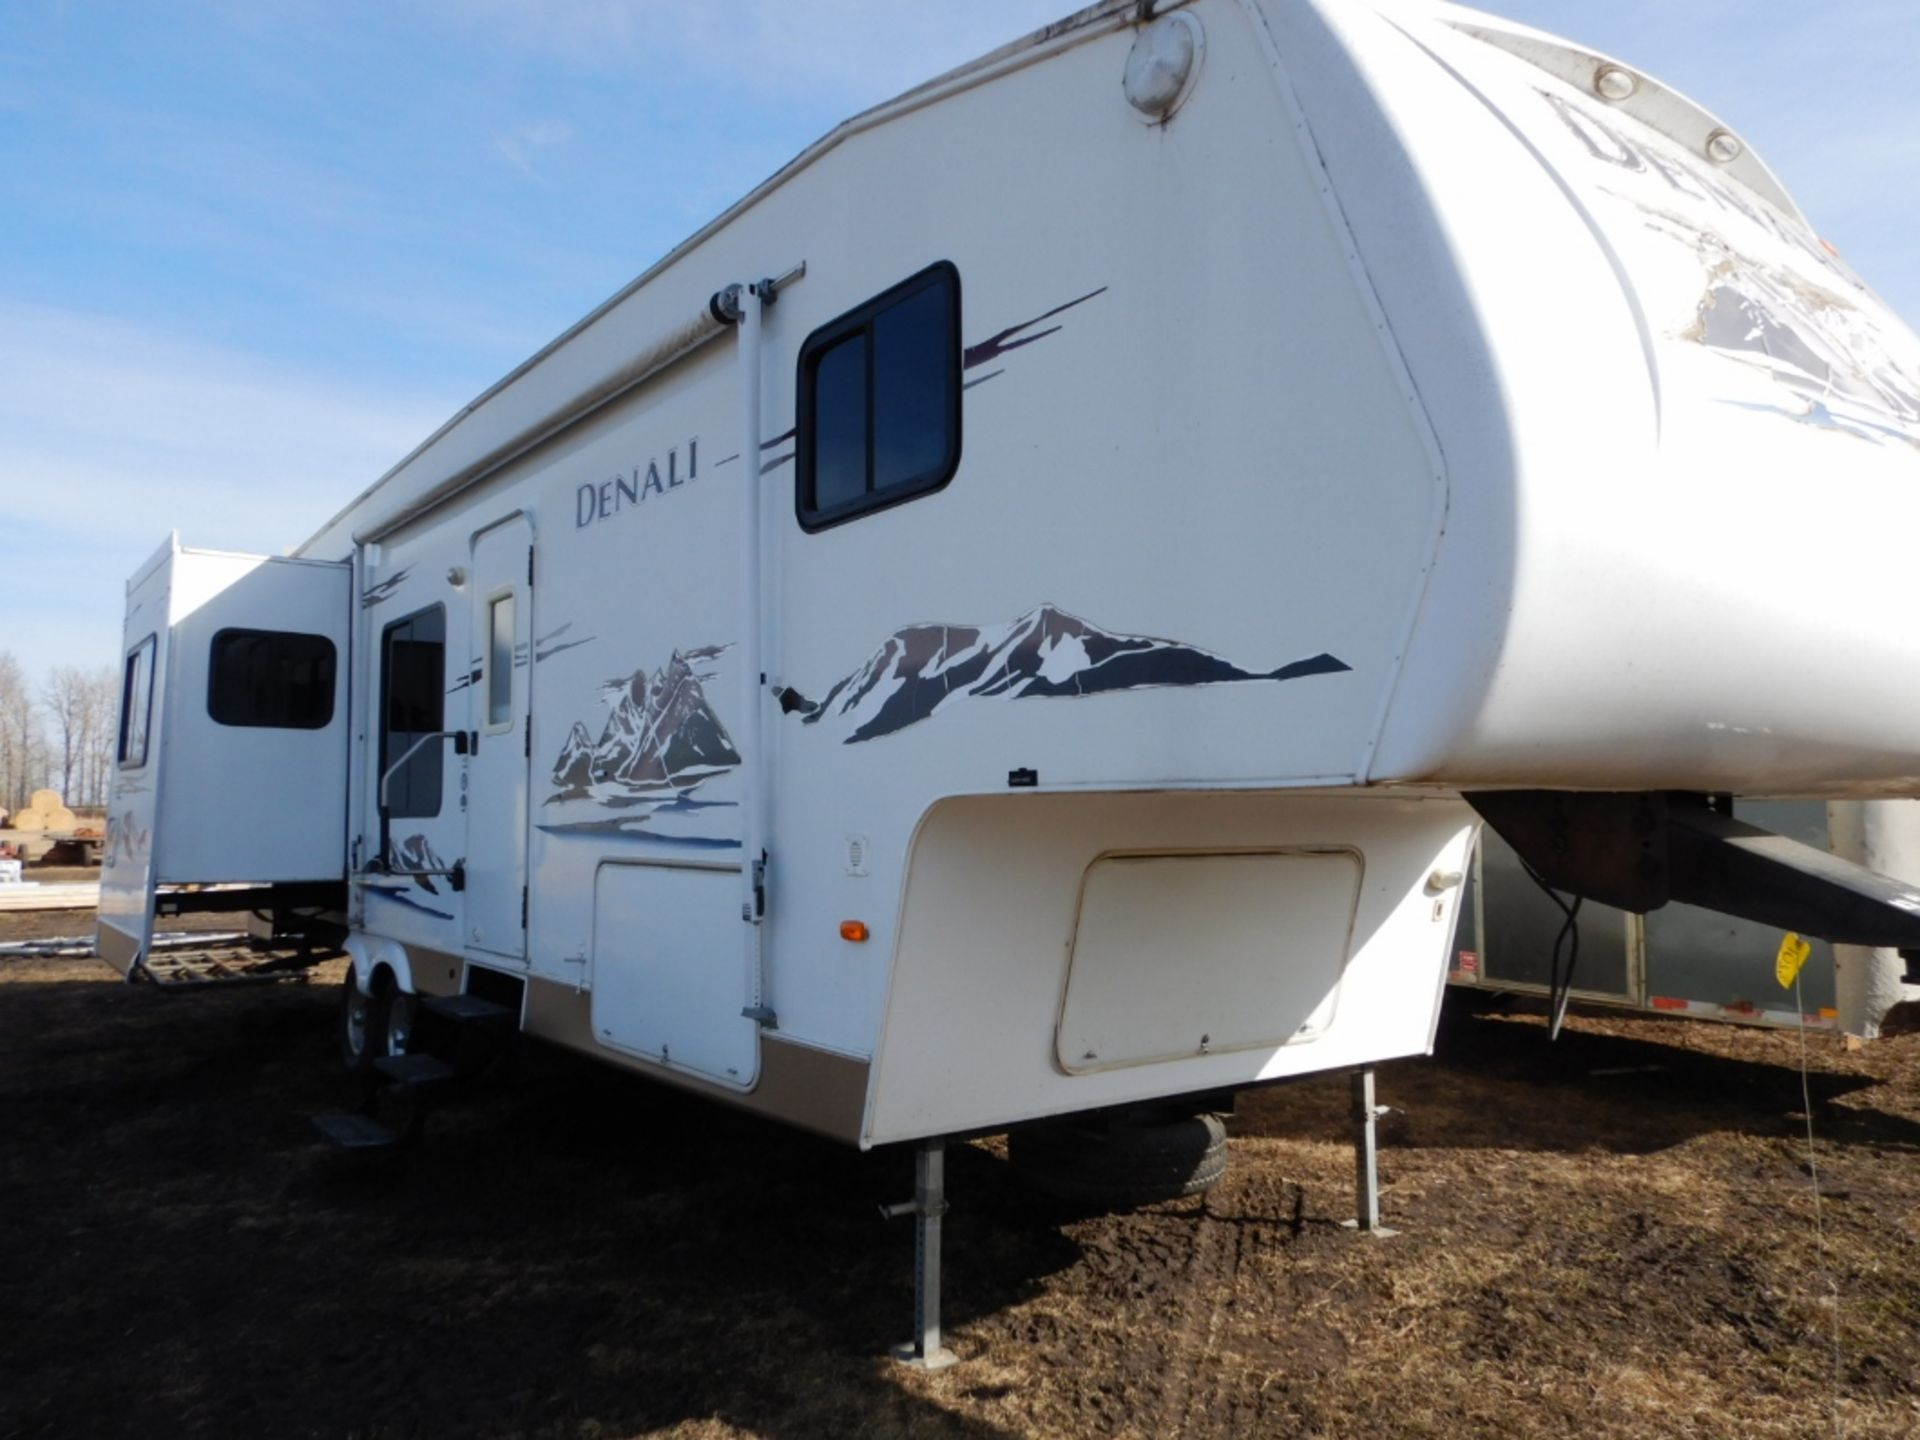 2006 DUTCHMEN DENALI 31RGBS/M5 5W HOLIDAY RV TRAILER S/N 47CFD1S226P616039 W/3-SLIDE-OUTS, AWNING, - Image 3 of 16